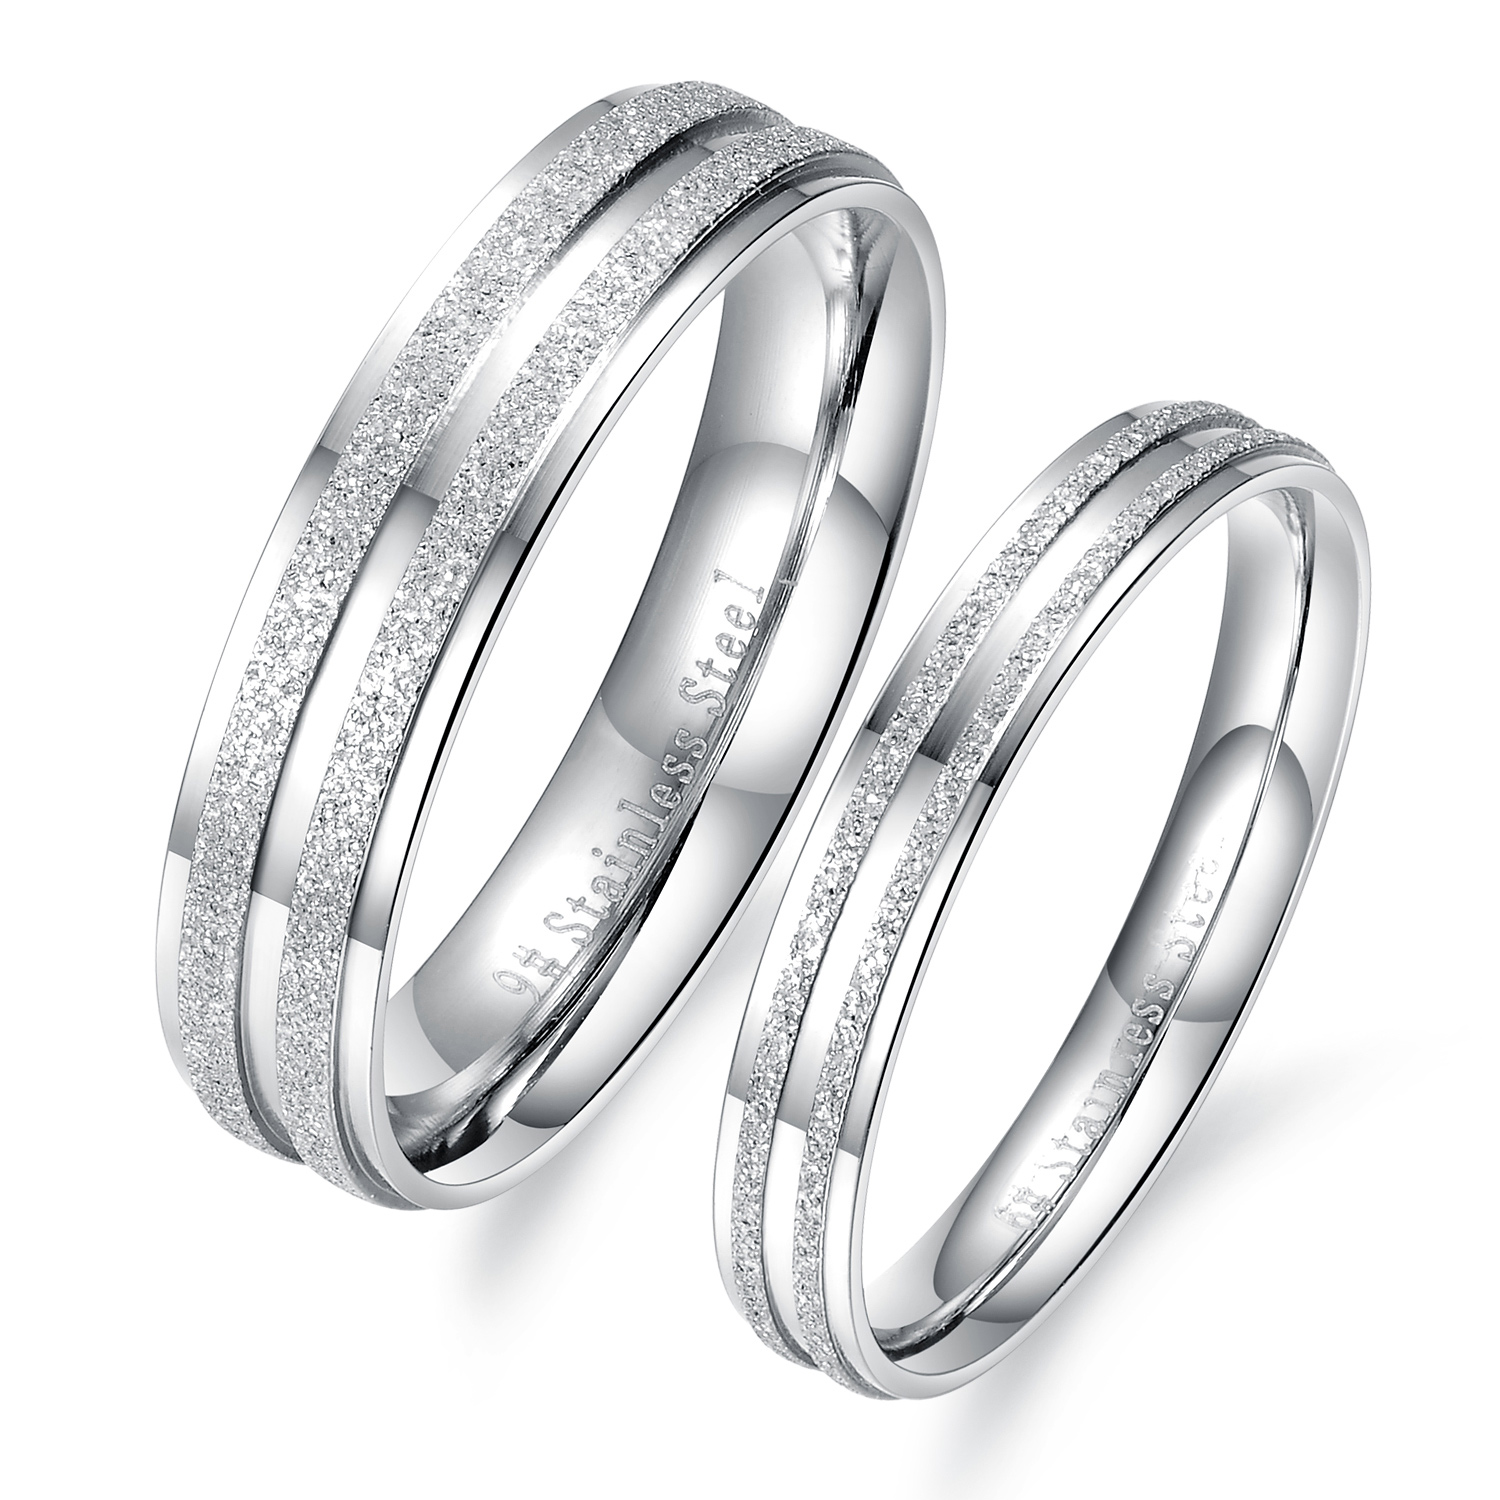 Fashion Simple Design Lovers' Engagement Wedding Rings Bands New Trendy 2015 Dull Polish Stainless Steel Women Men Jewelry: Simple Unique Wedding Bands For Women At Websimilar.org